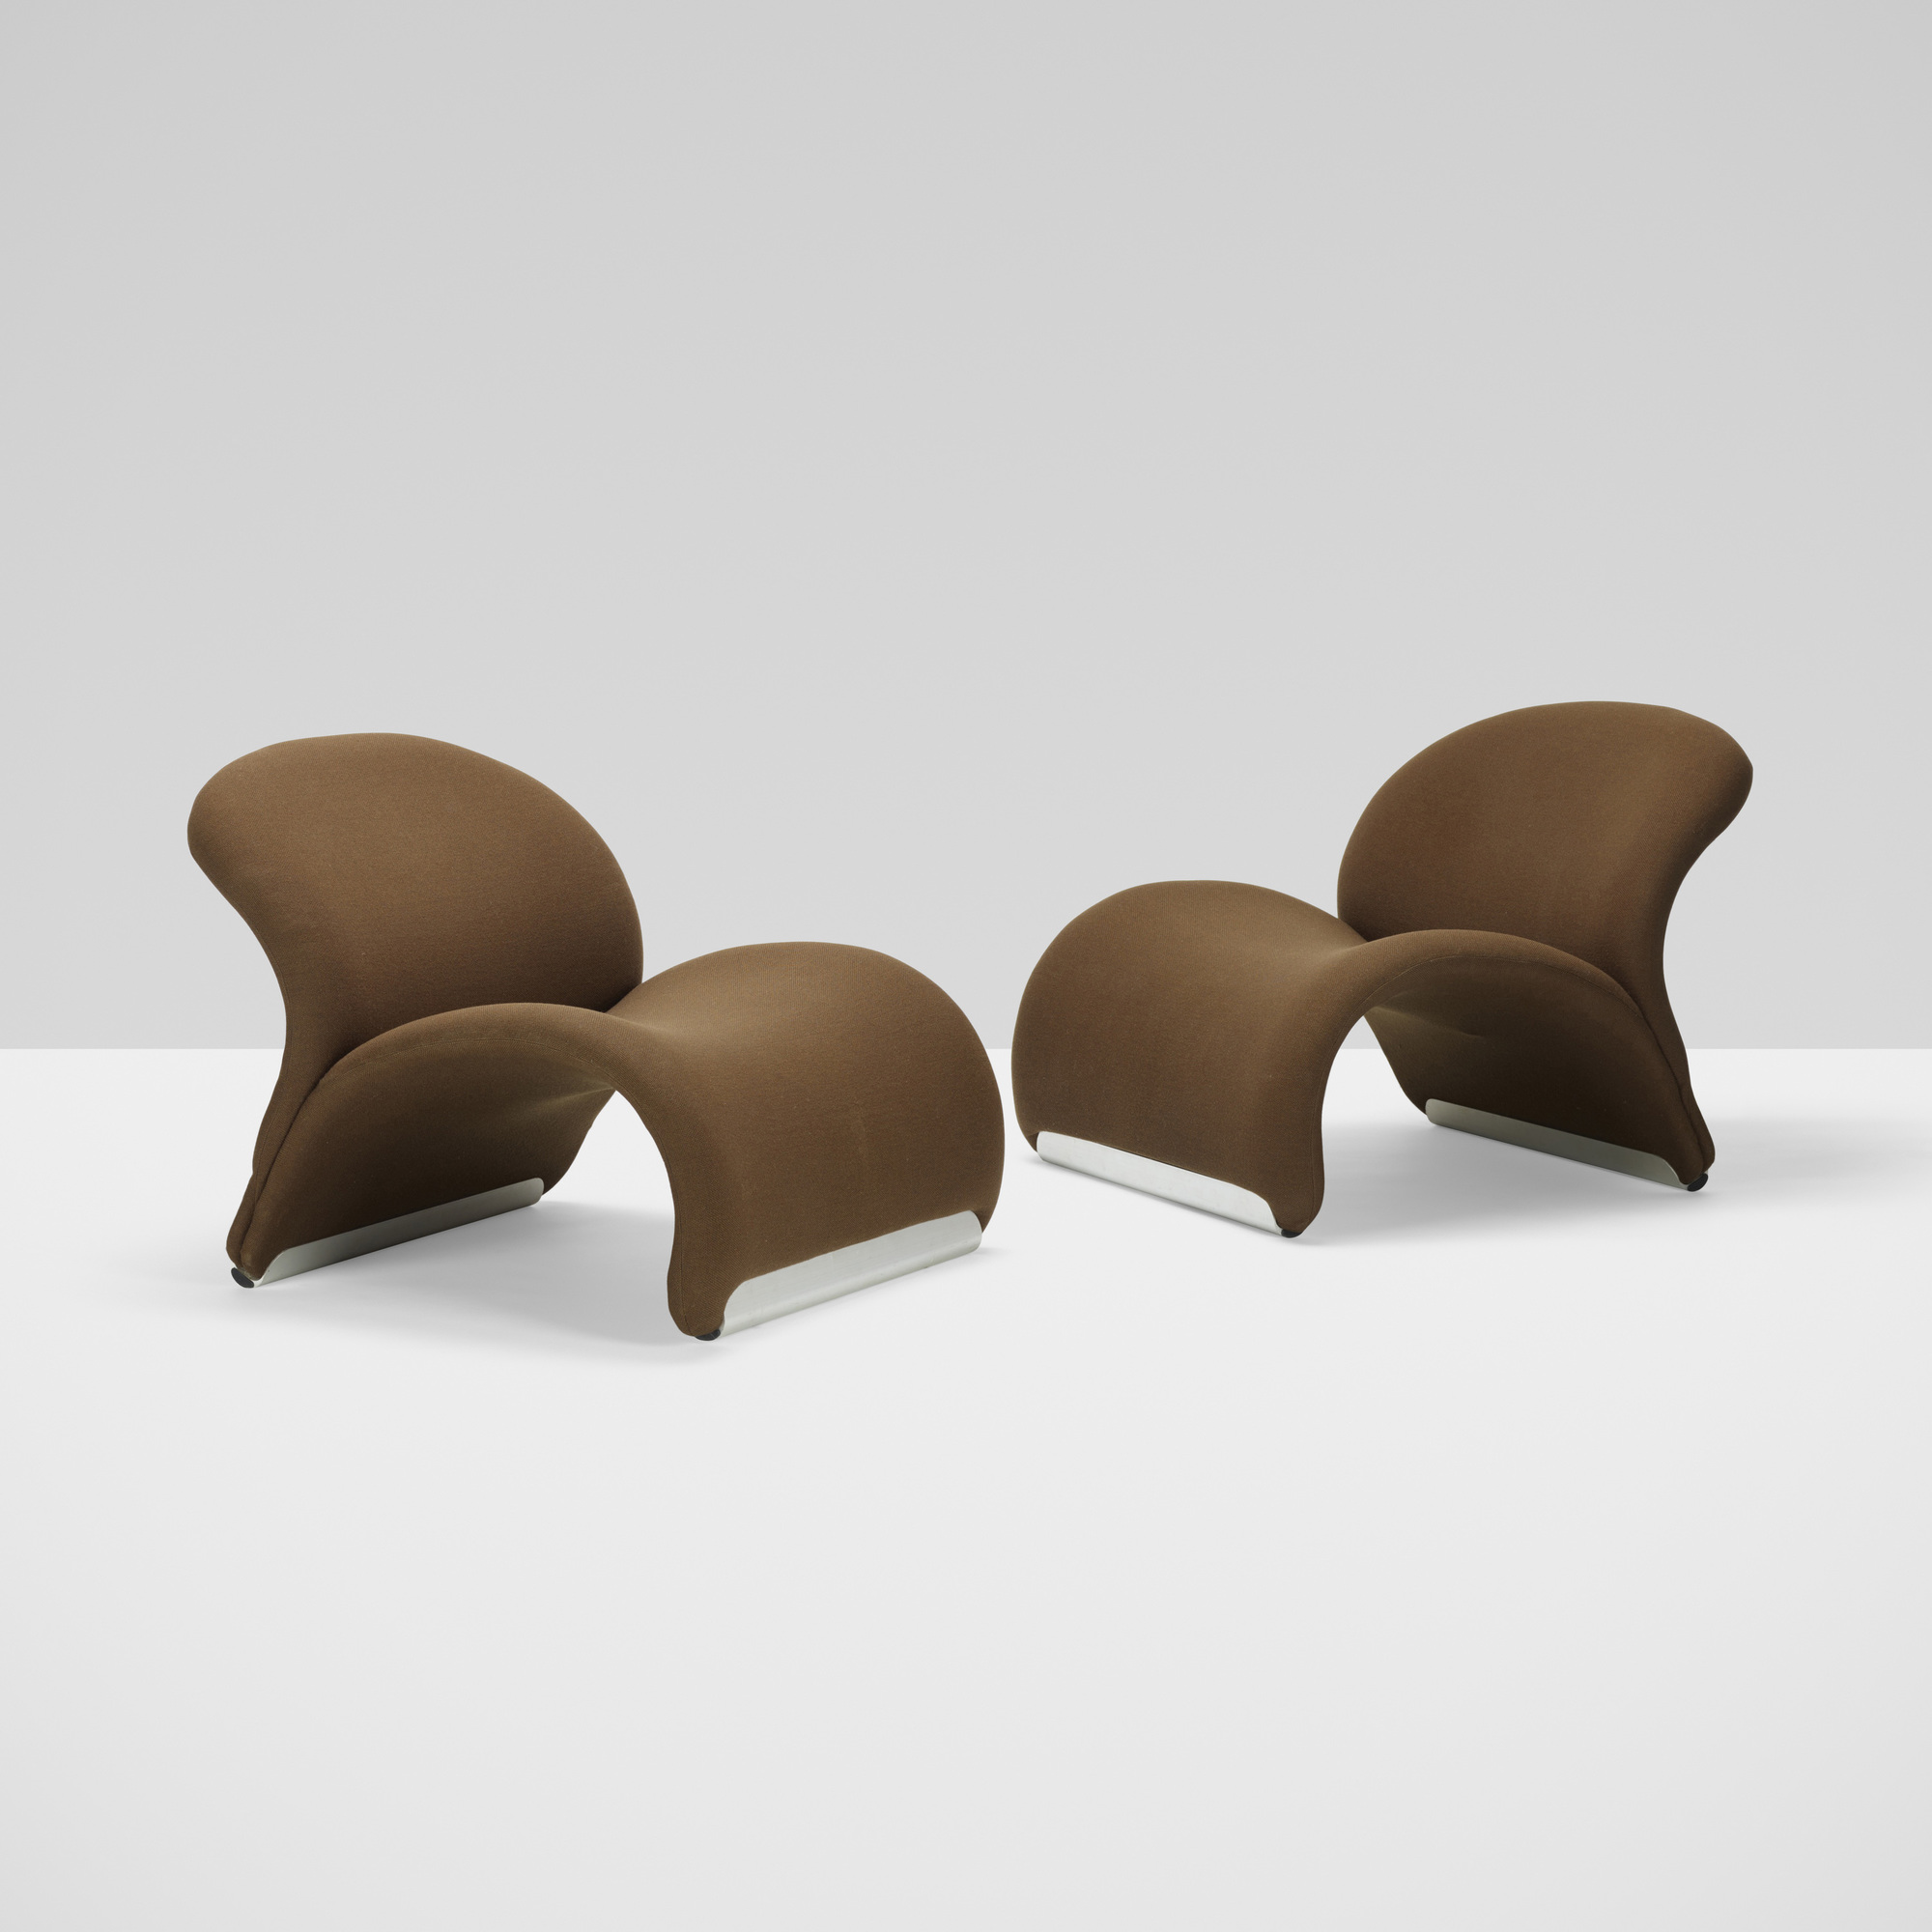 320: Pierre Paulin / Le Chat chairs model 574, pair (3 of 4)